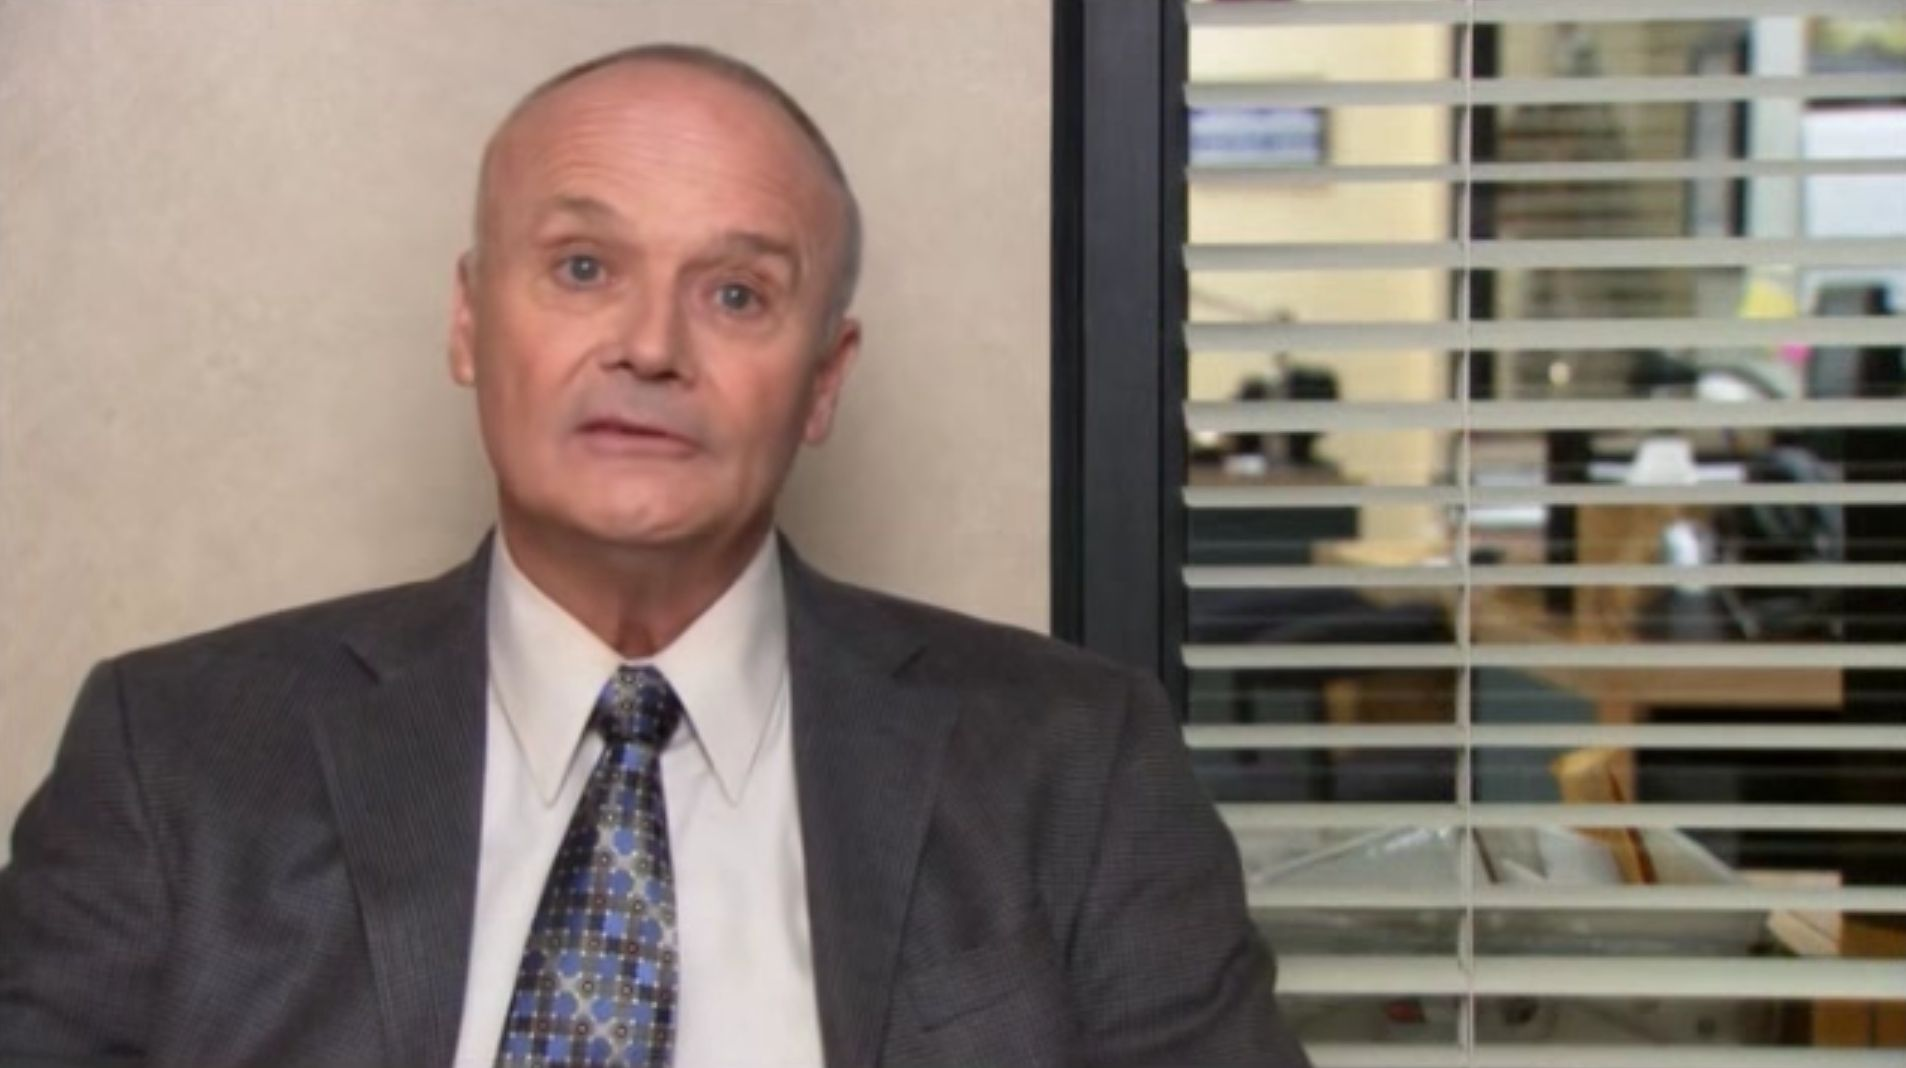 Creed The Office Blank Template Imgflip